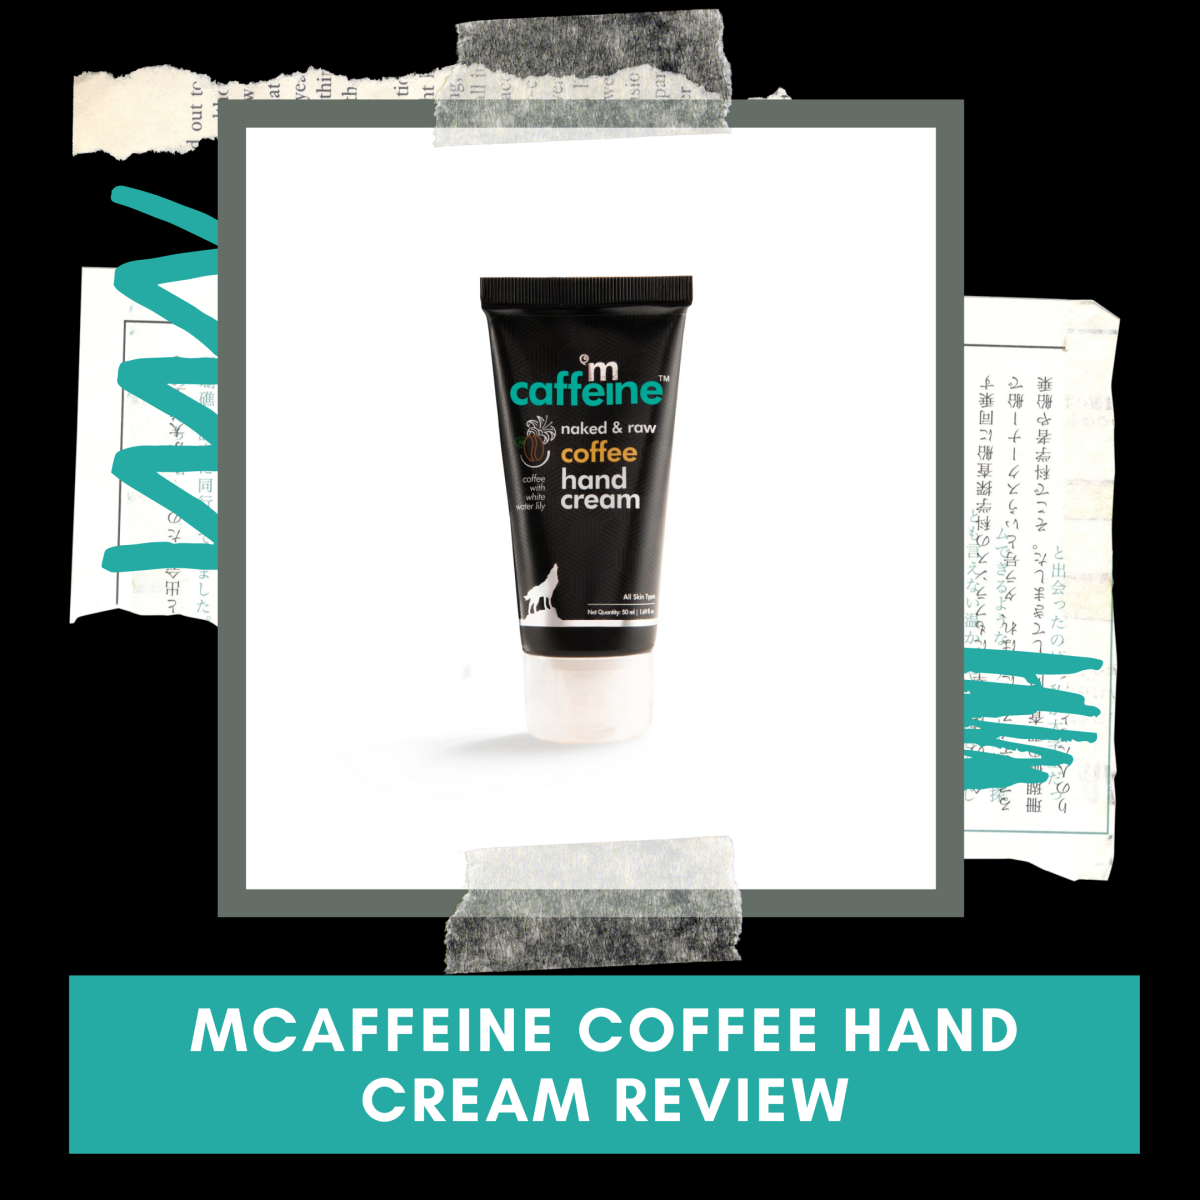 MCaffeine Naked & Raw Coffee Hand Cream Review